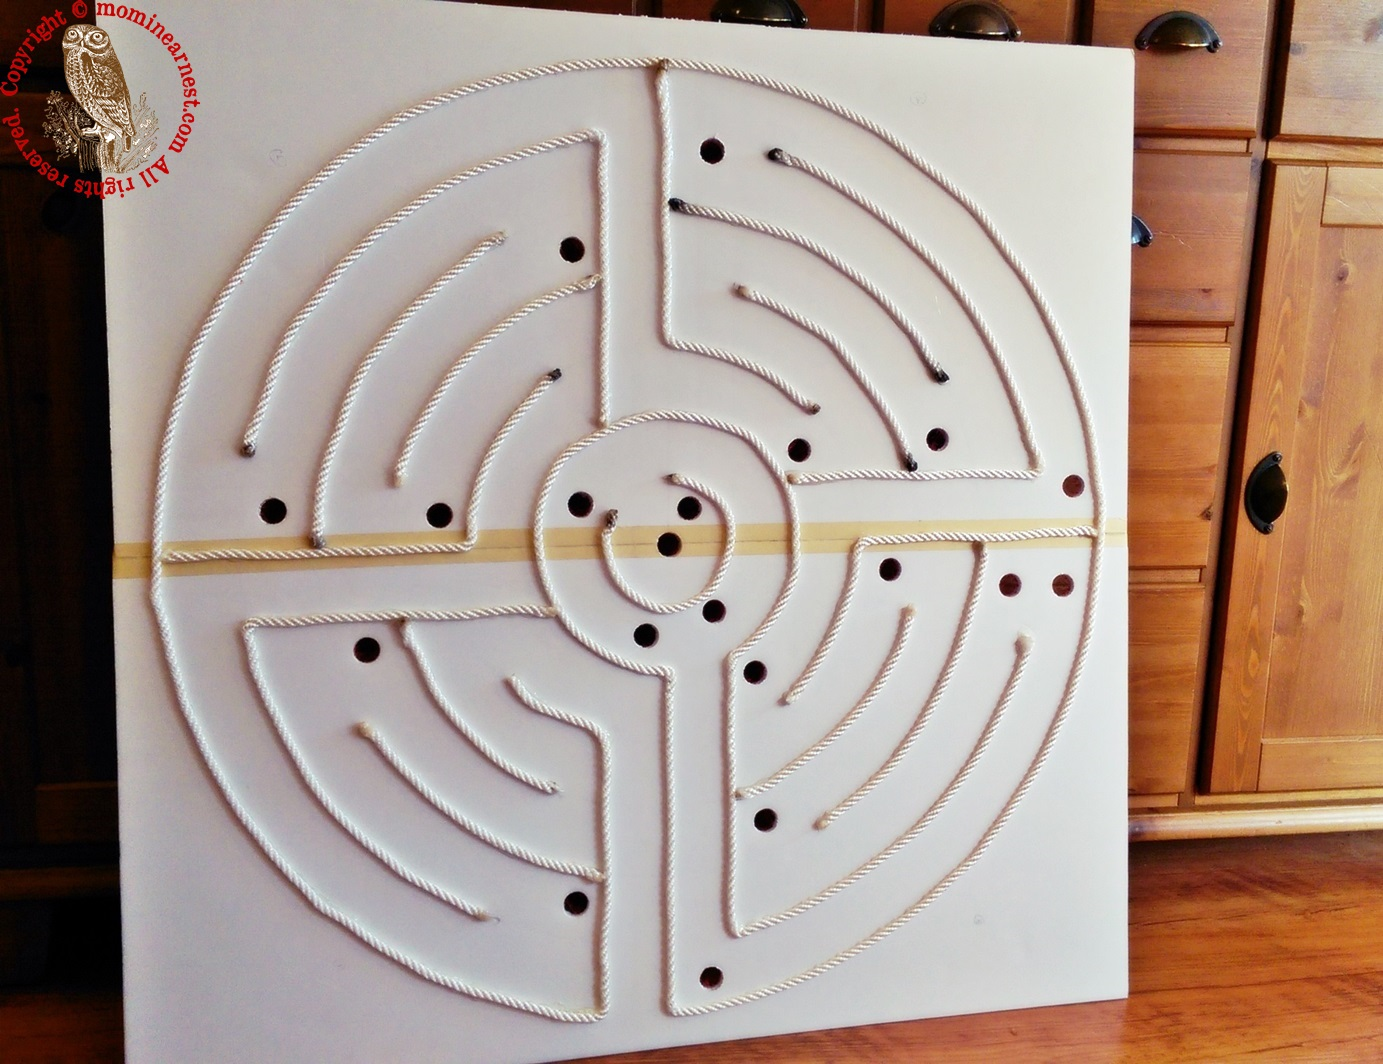 learn how to make a labyrinth for lots of hands-on fun!